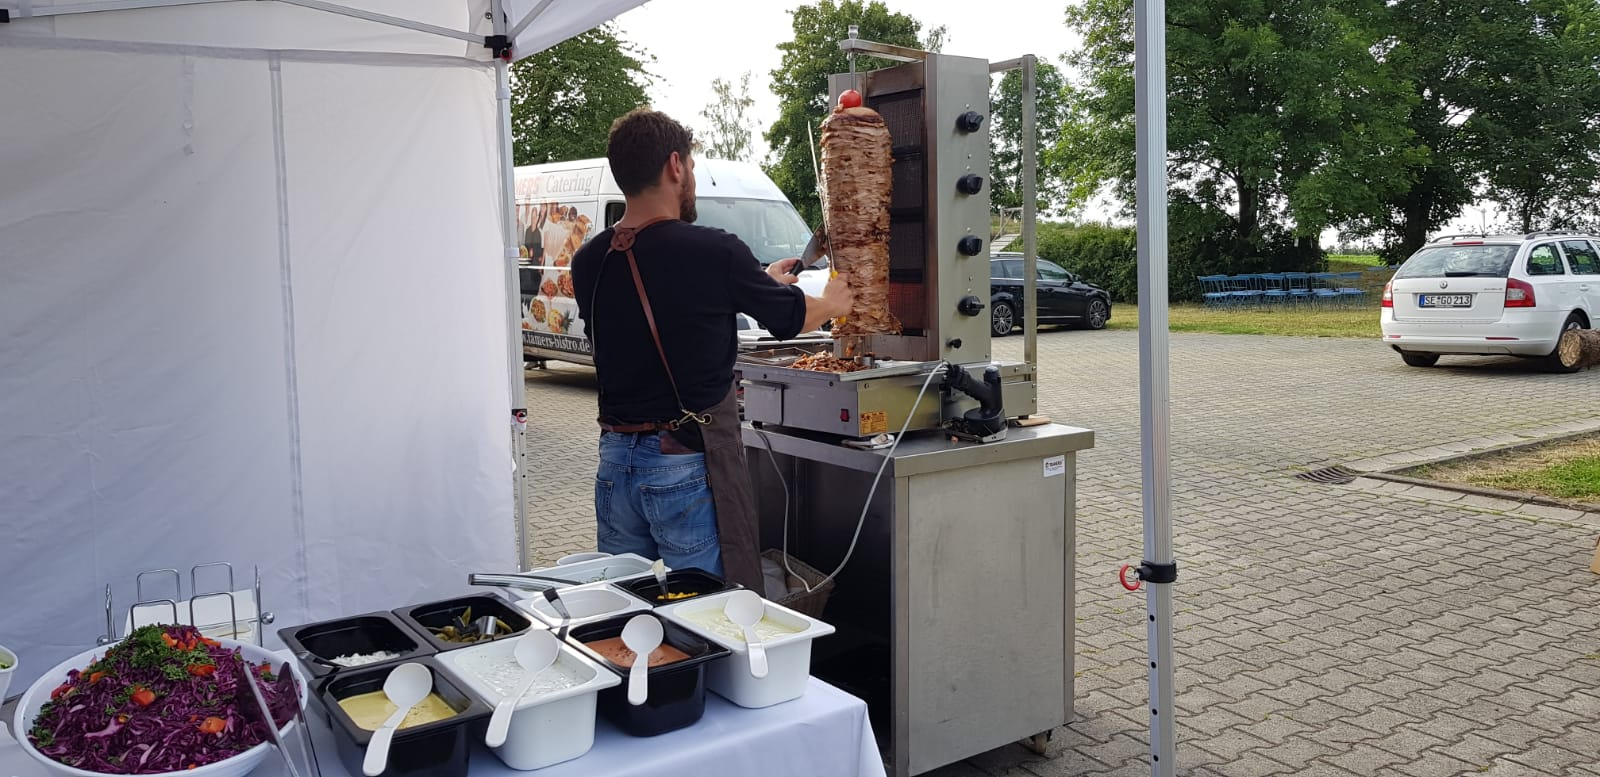 Dönergrill-Catering - Zubereitung - Tamers Catering Leipzig